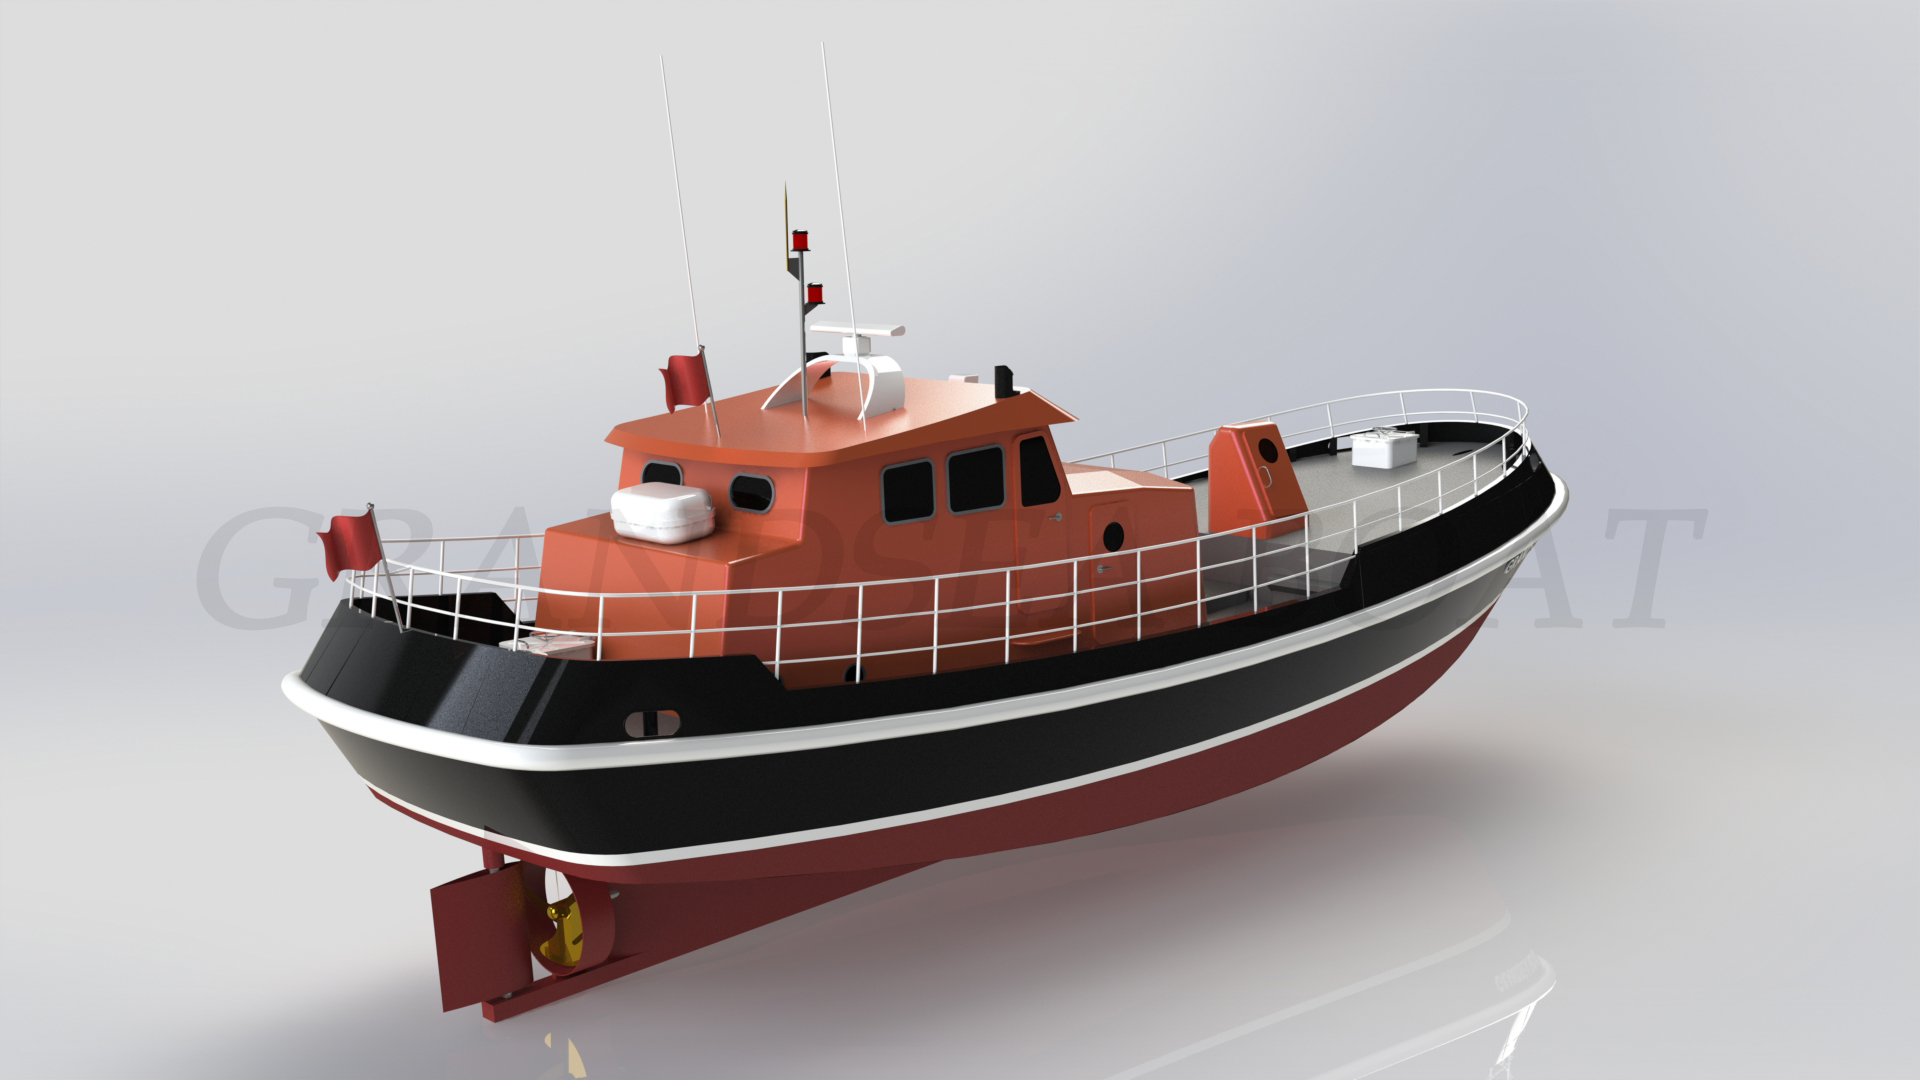 Grandsea 16.5m/78ft Fiberglass Hull Deep Sea Stern Trawler Commercial Fishing Boat/ship/vessel for Sale